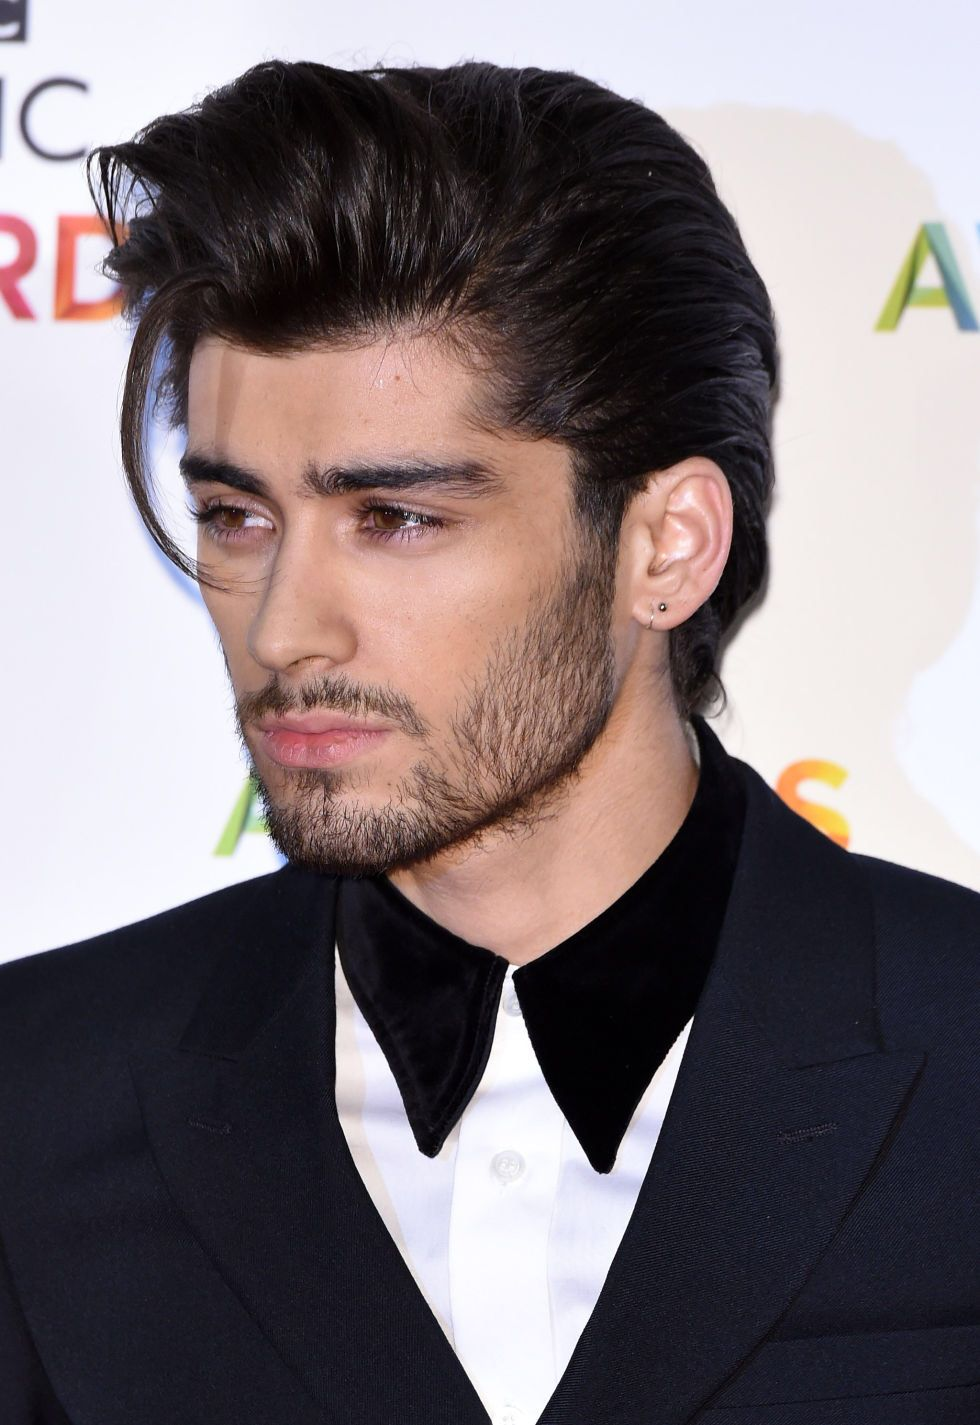 Zayn Malik Quit One Direction And Now His Hair Zayn Malik Hairstyle Zayn Malik Photos Zayn Malik Pics